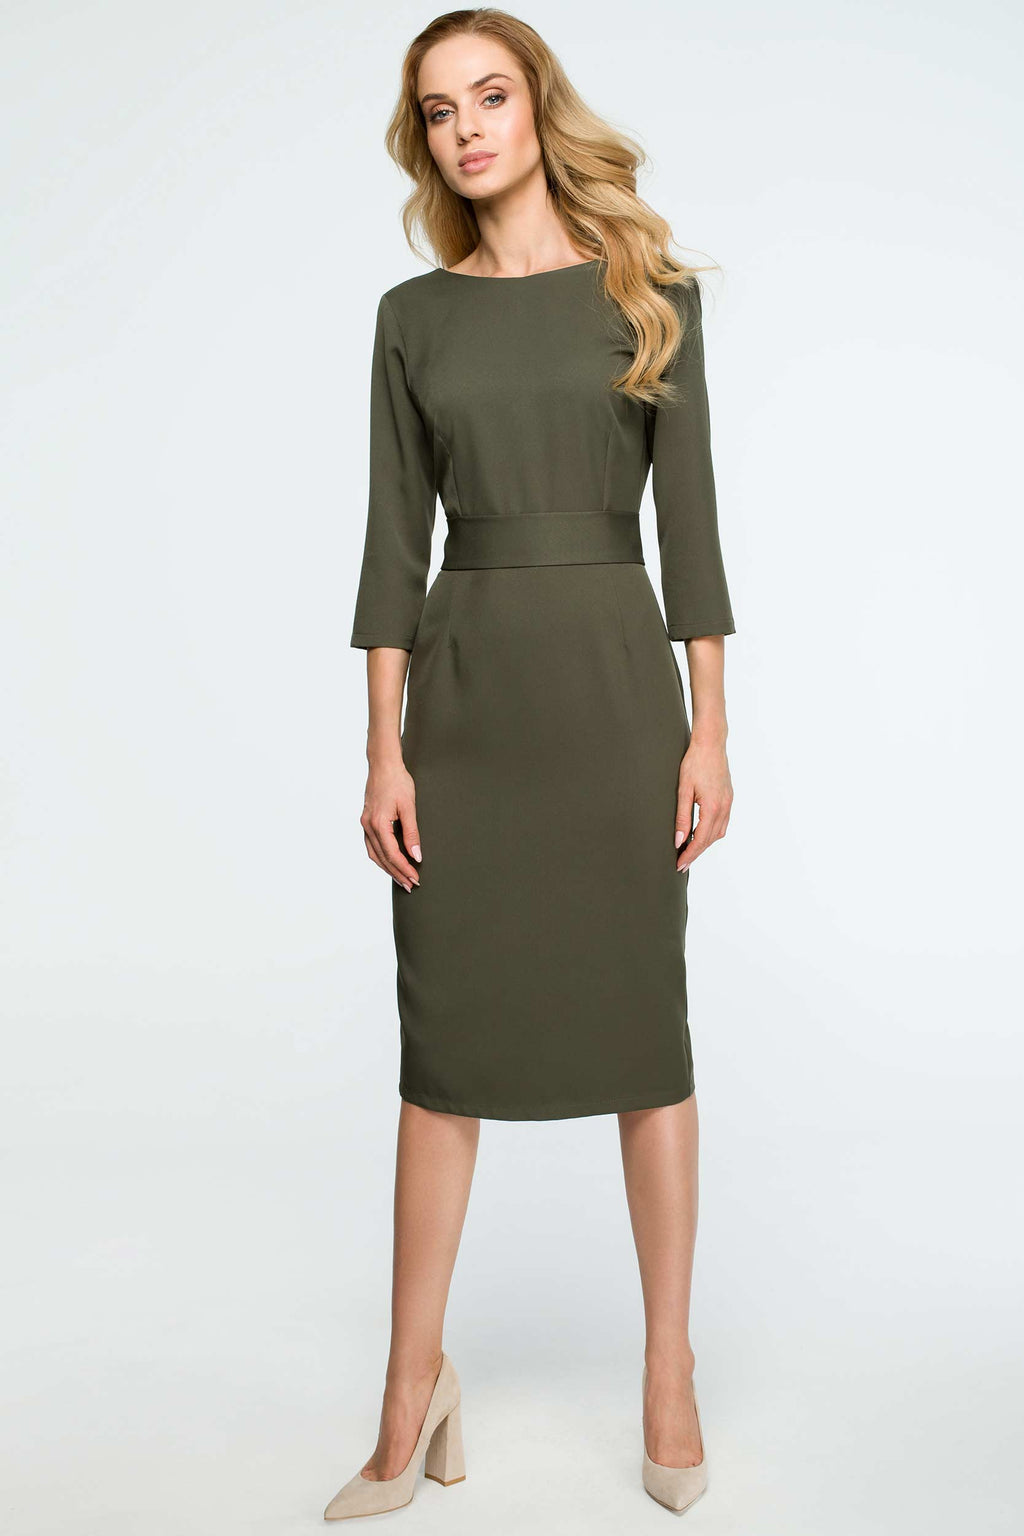 Khaki Midi Buttoned Down Dress